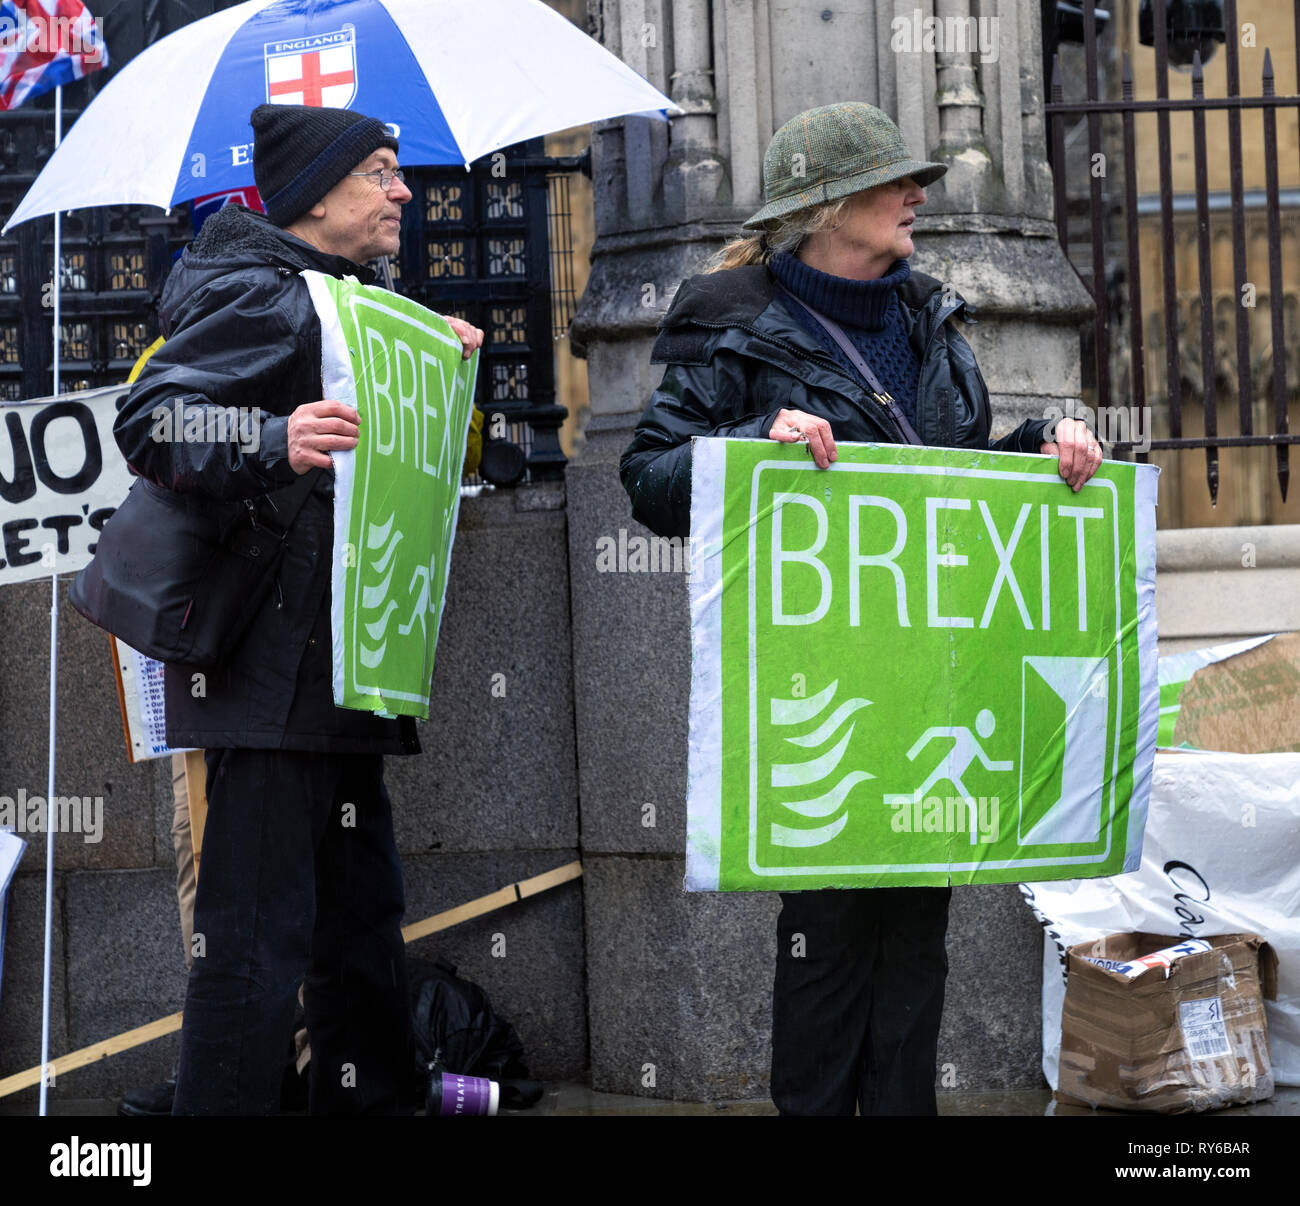 London, UK. 12th Mar, 2019. Pro - Brexit leave the European Union supporter protesting outside the Houses of Parliament. Credit: AndKa/Alamy Live News Stock Photo